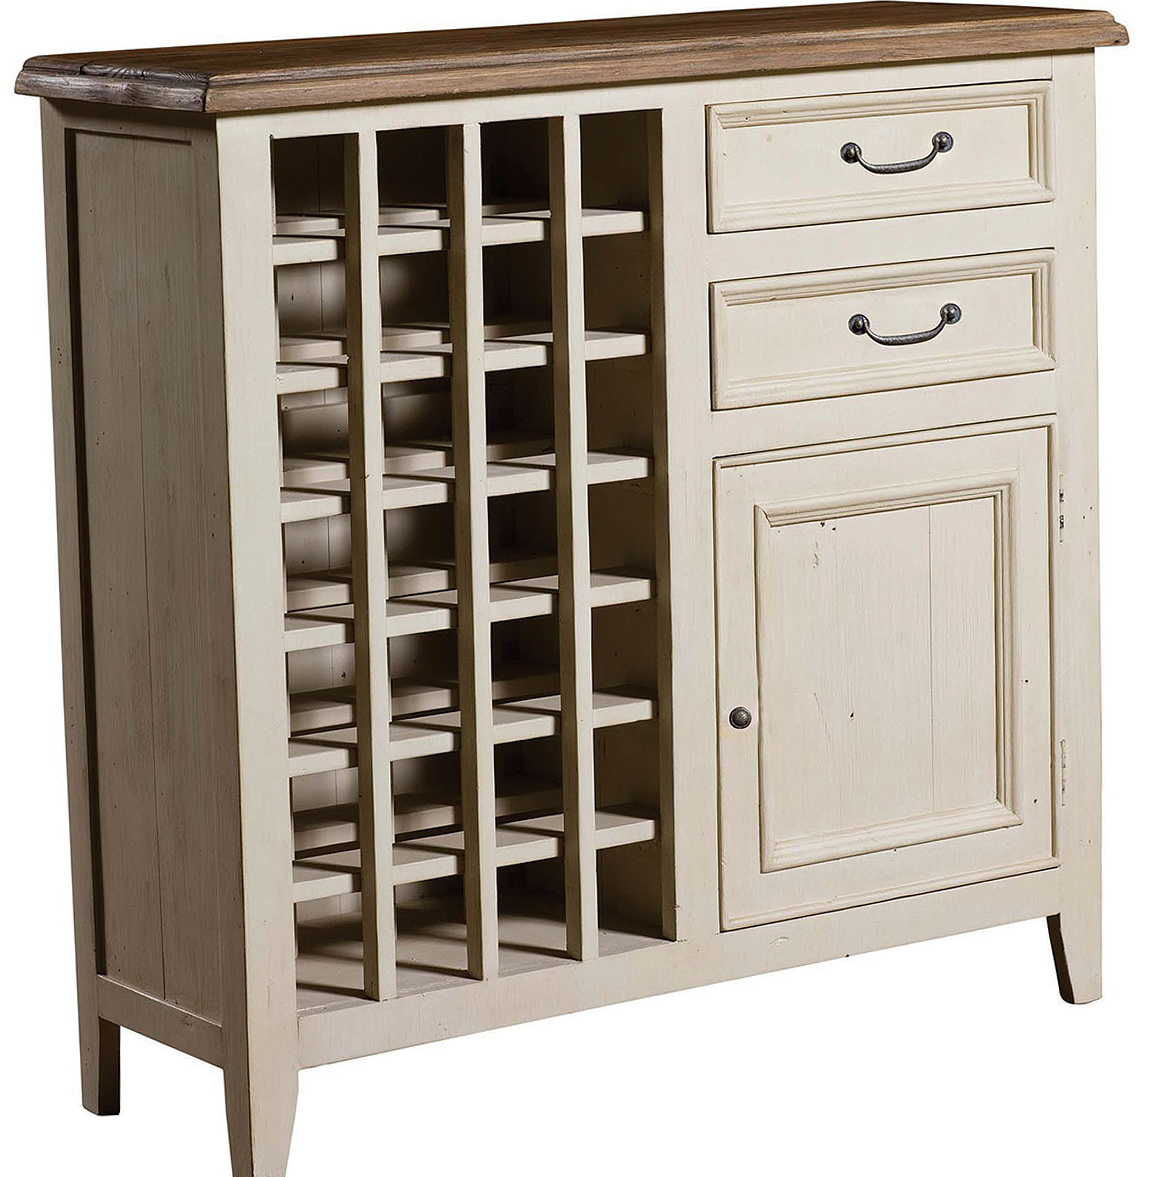 Permalink to White Wine Rack Cabinet